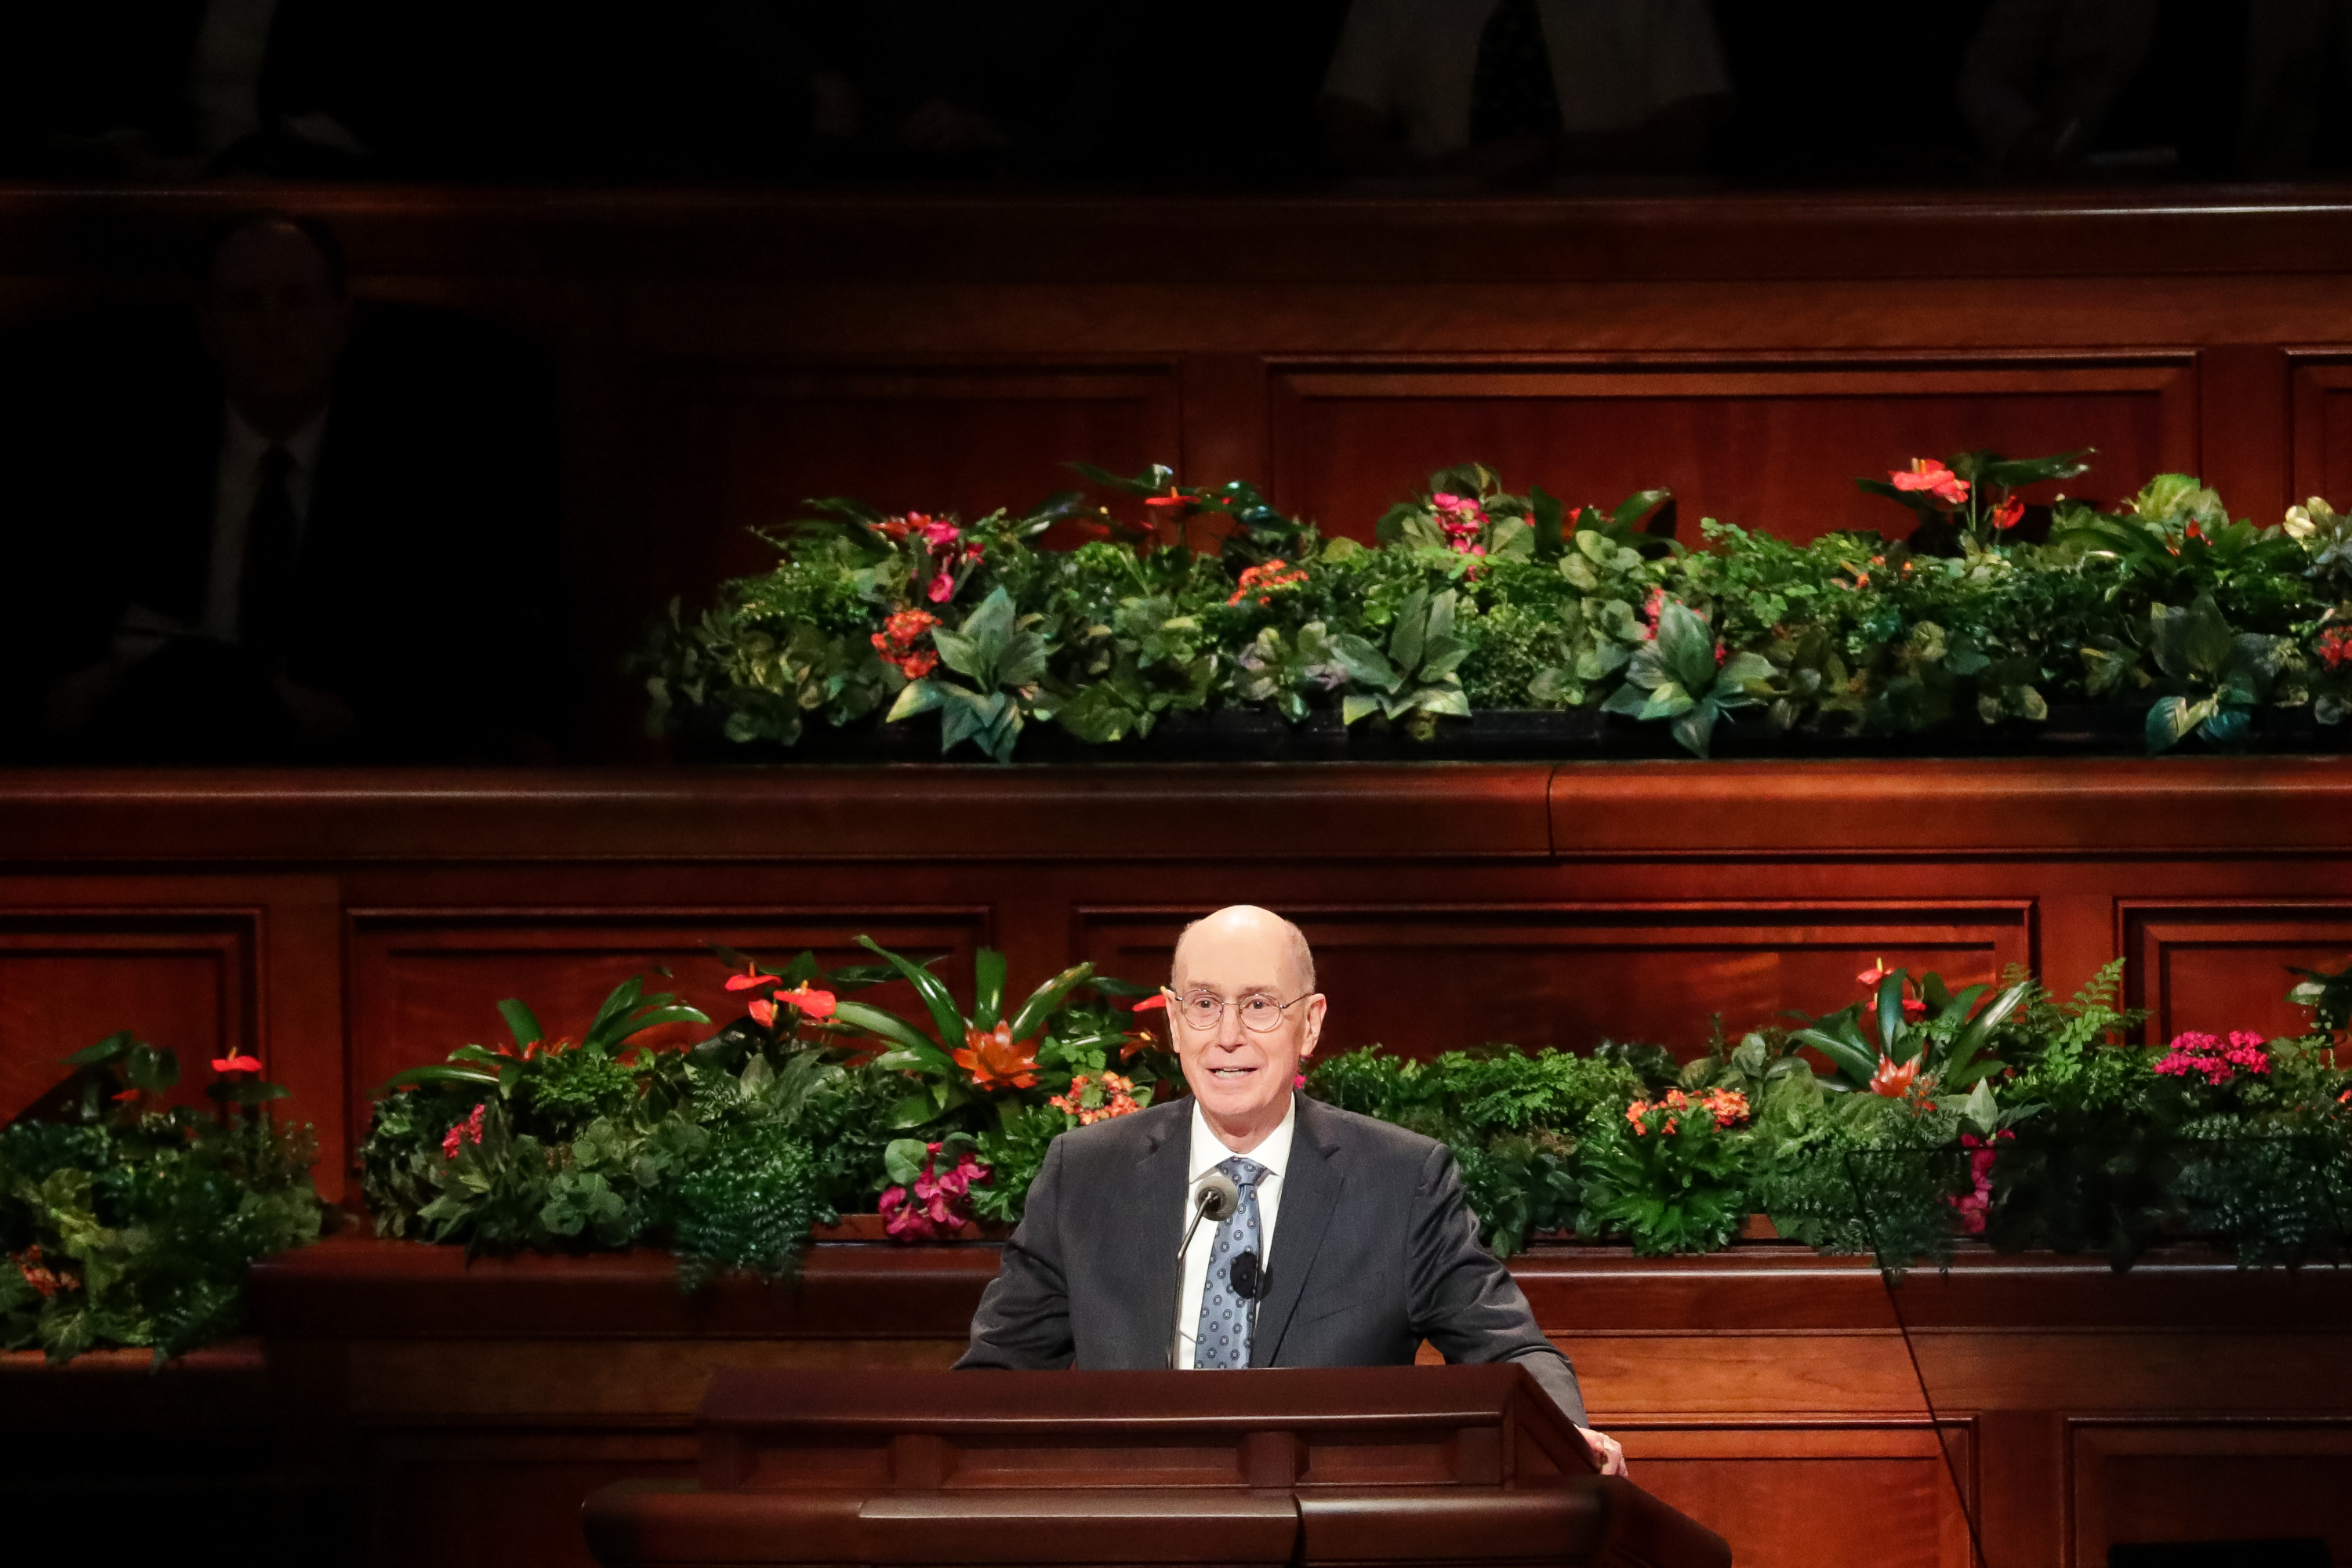 President Henry B. Eyring, second counselor in the First Presidency, speaks during the Saturday morning session of the 188th Semiannual General Conference of The Church of Jesus Christ of Latter-day Saints in the Conference Center in Salt Lake City on Saturday, Oct. 6, 2018.